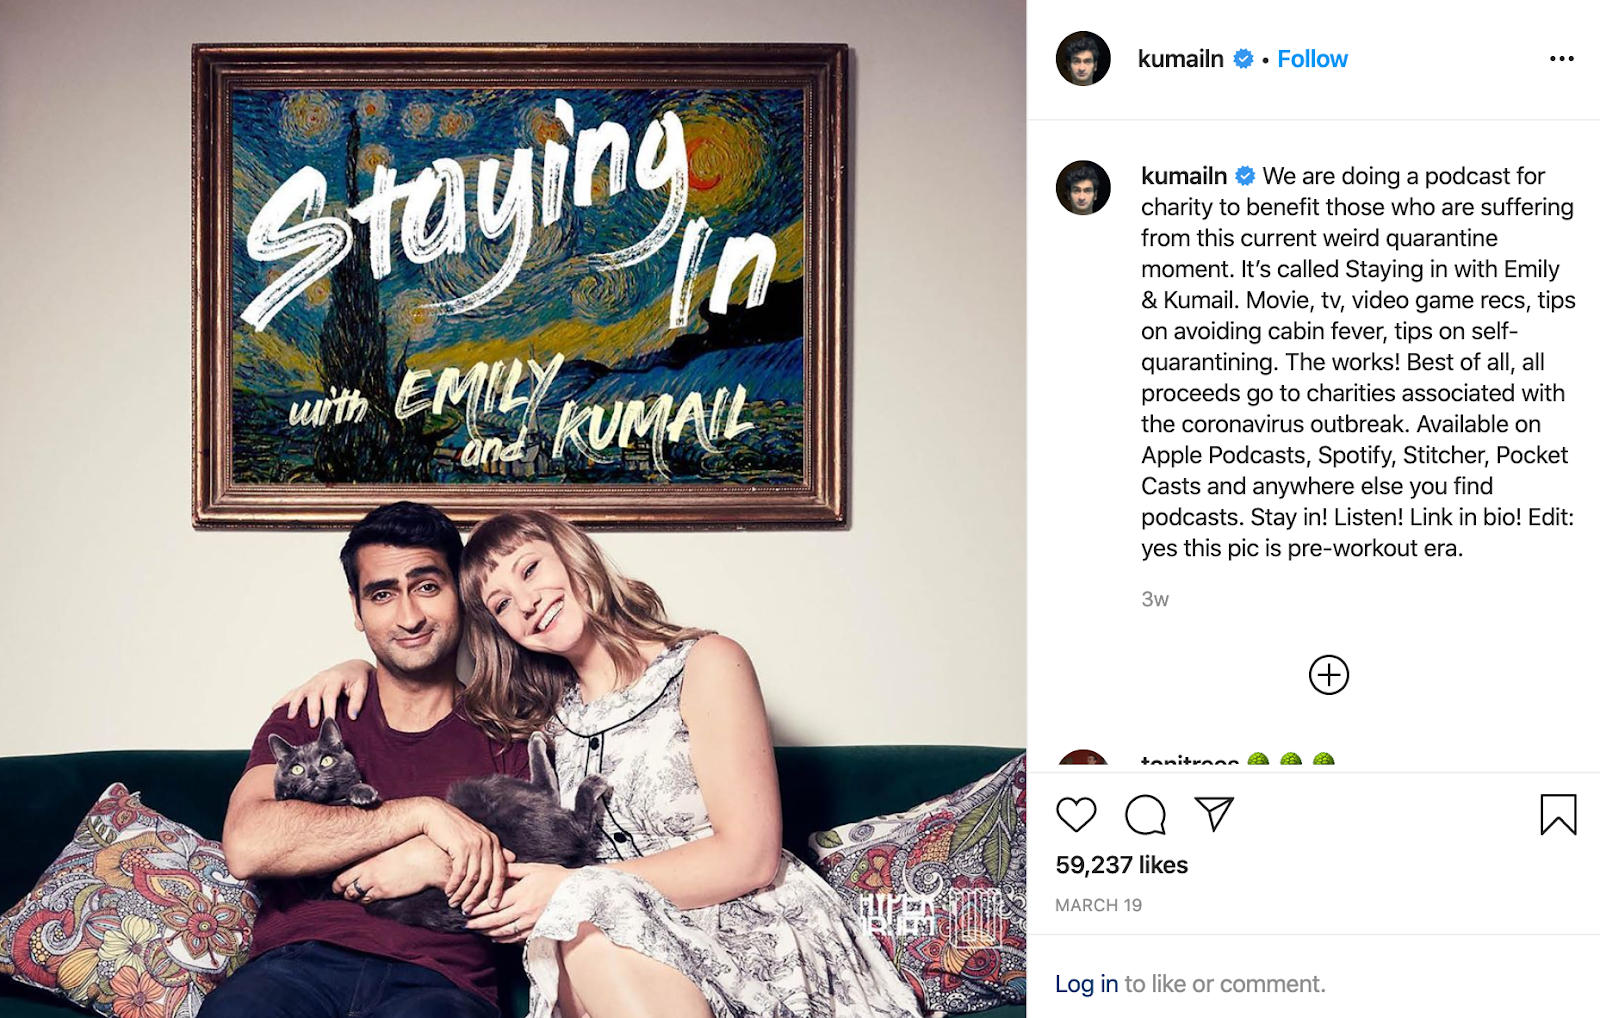 Staying In with Emily and Kumail